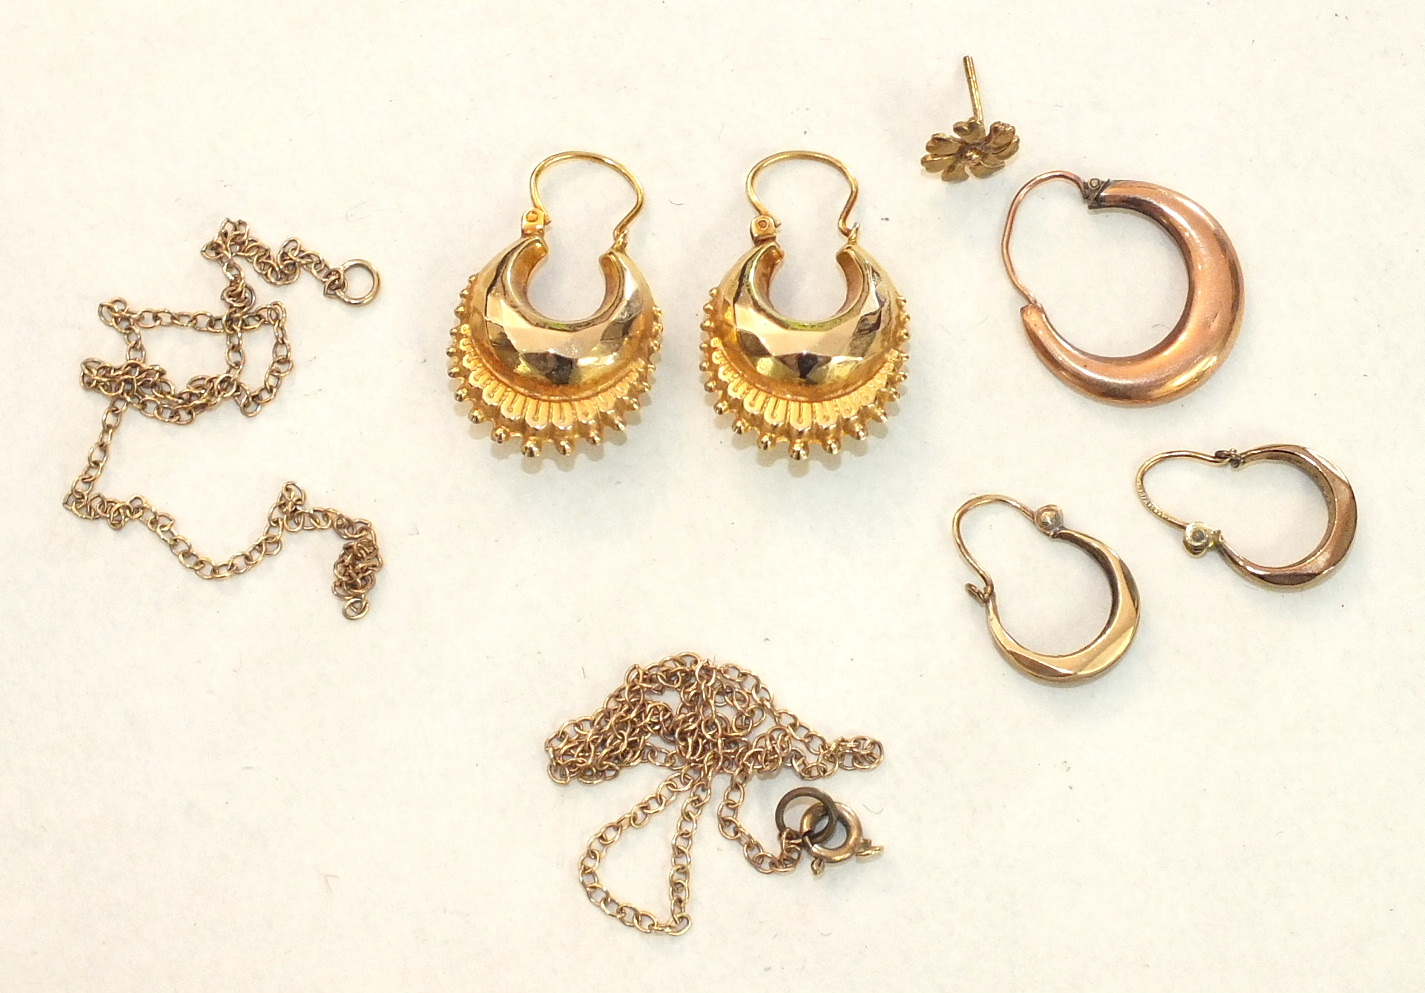 A pair of Creole-style 9ct gold earrings and other 9ct gold jewellery, 5.8g.